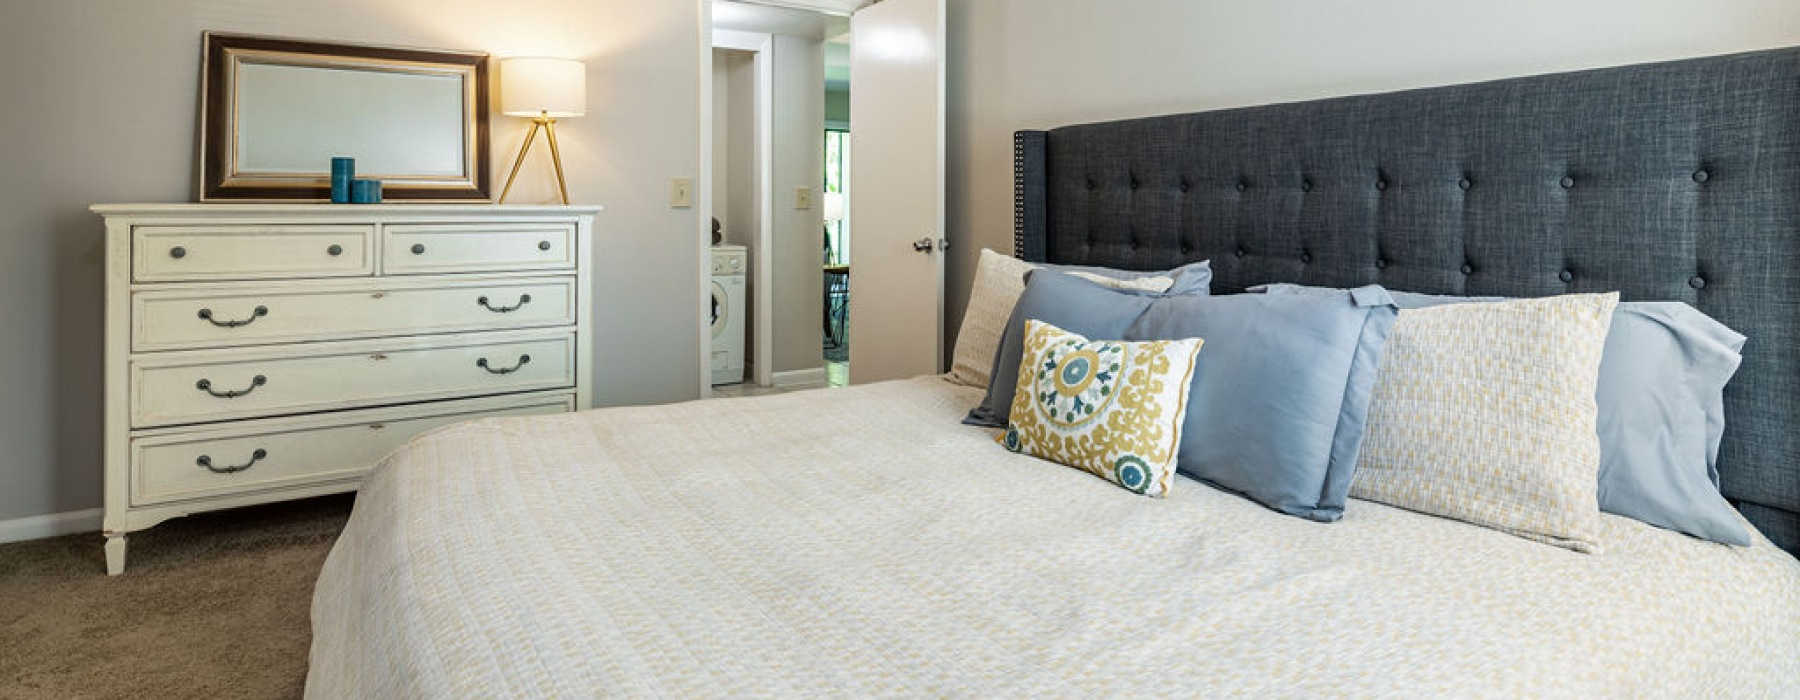 The Pointe at Clearwater Model Apartment Bedroom with Furnishings